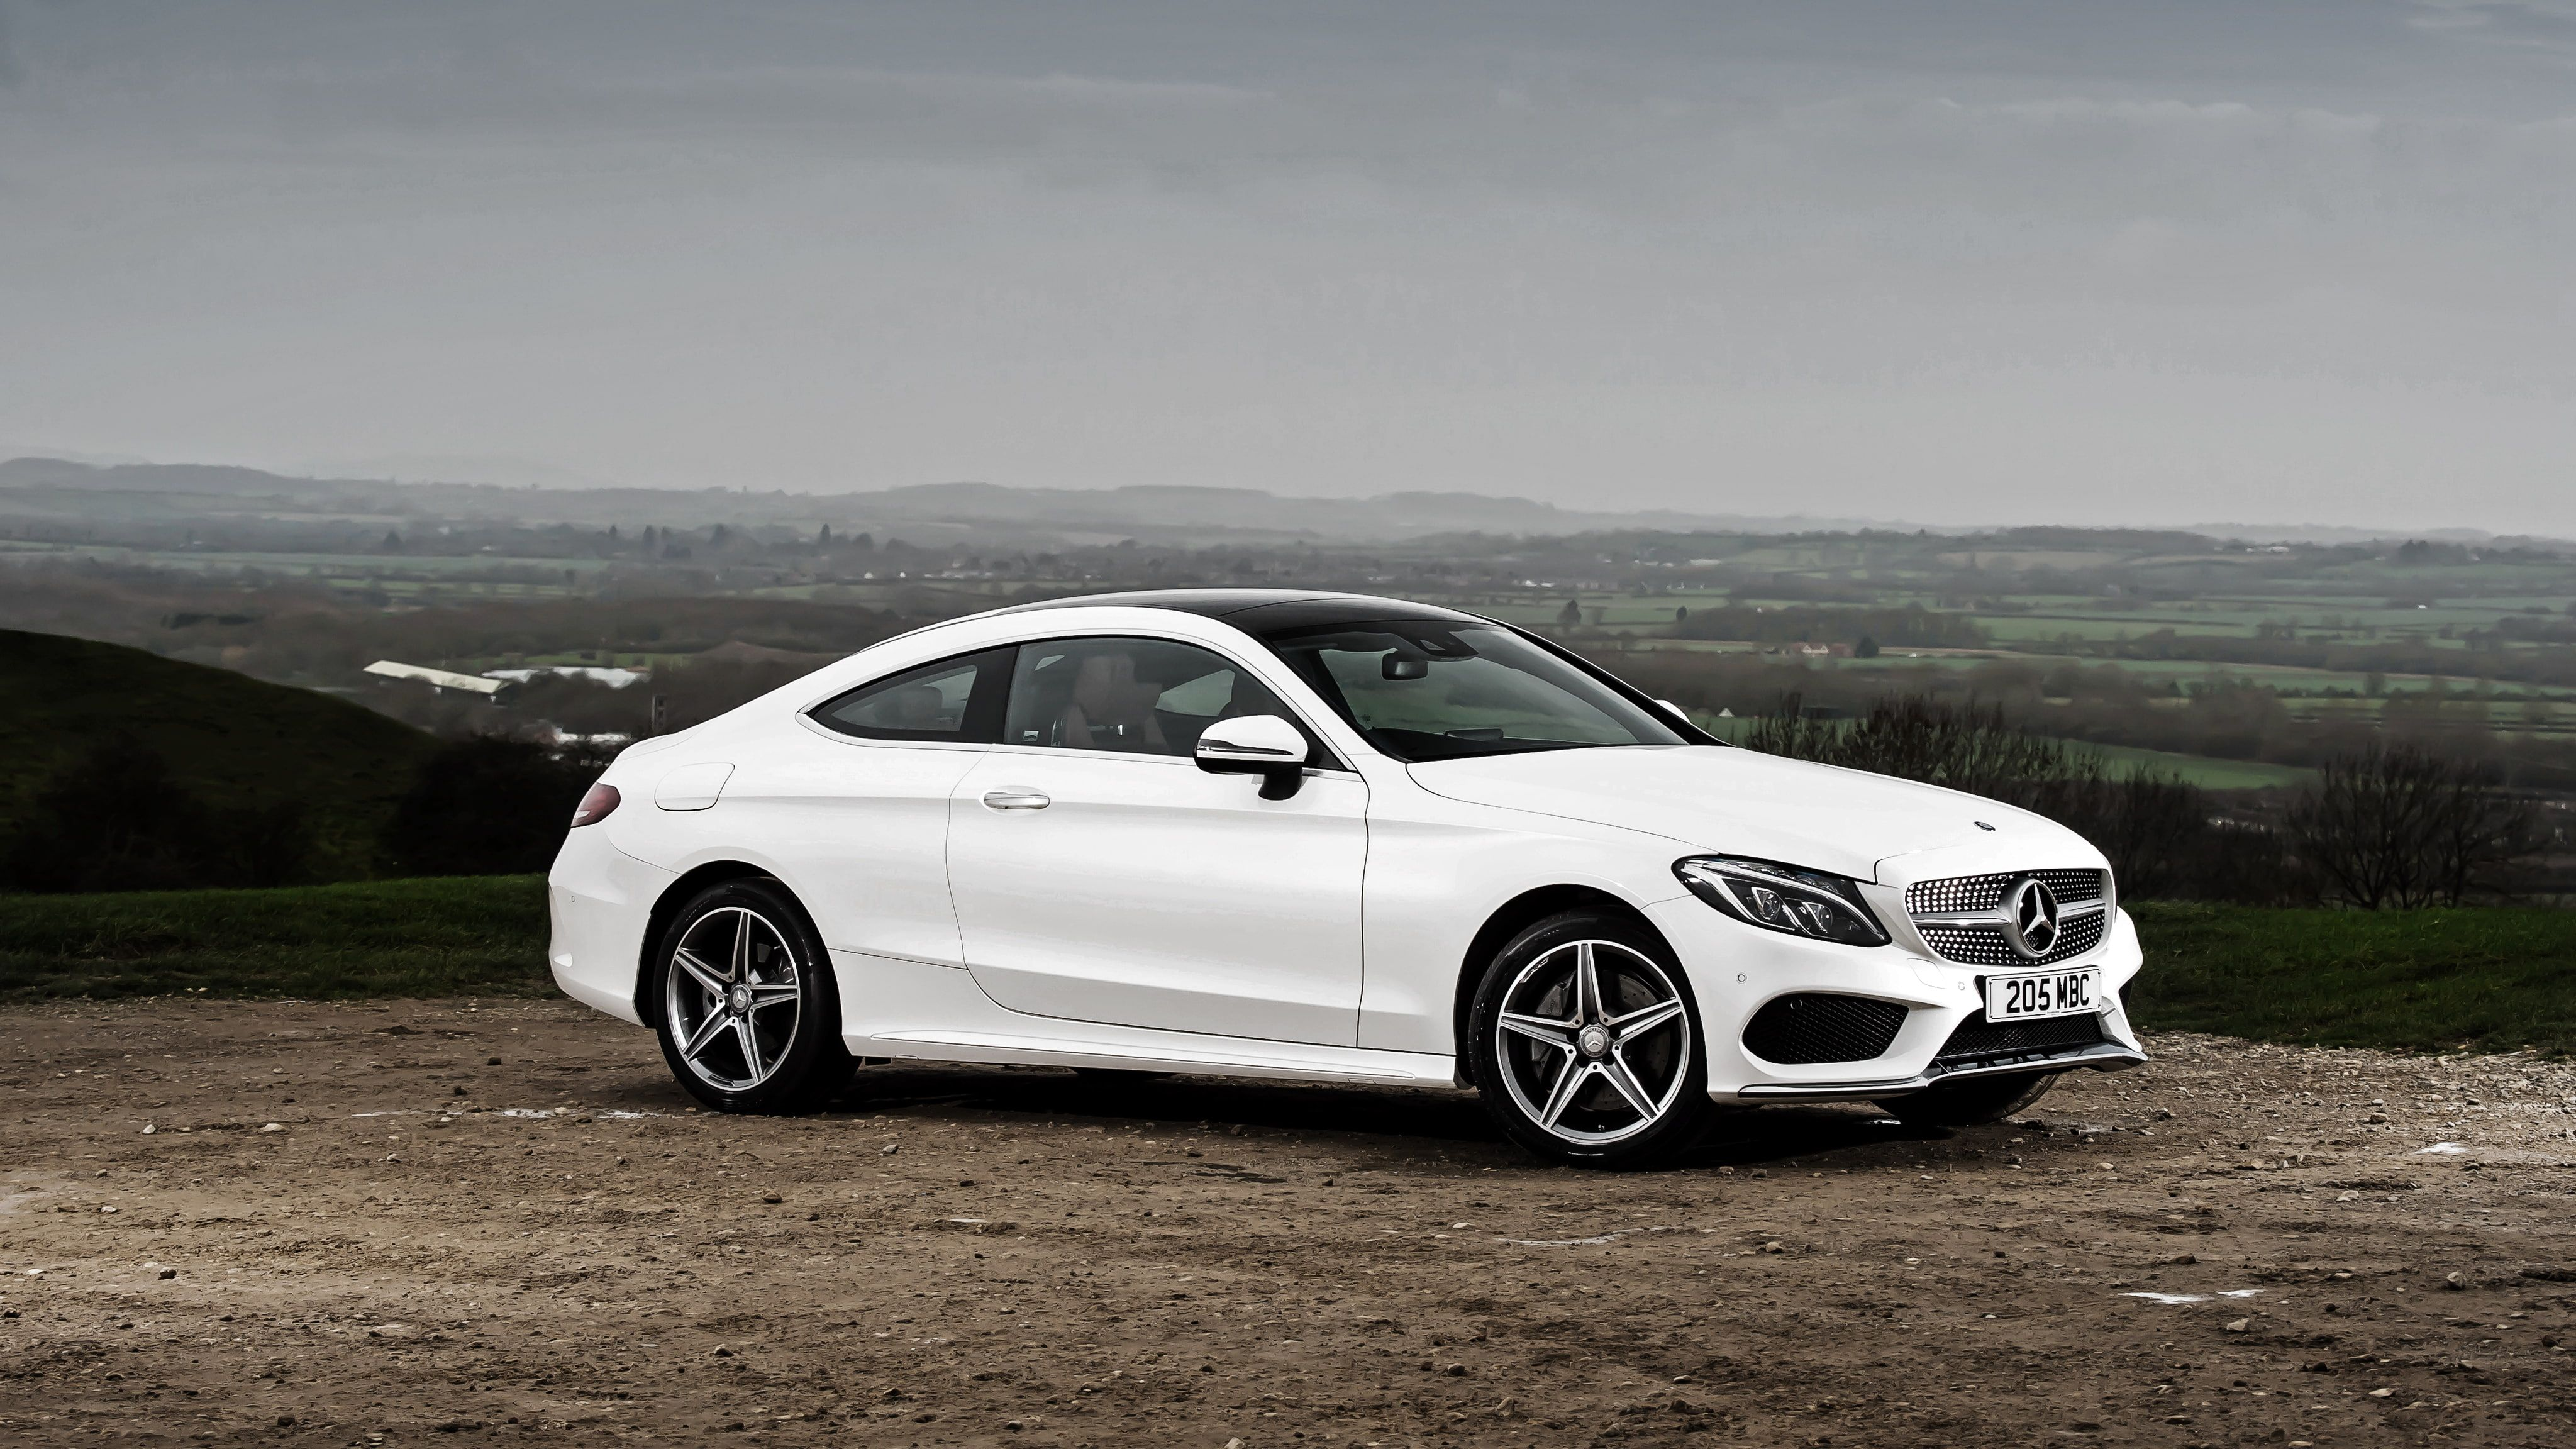 White Mercedes Benz Mercedes Amg Coupe C Class C205 4k Wallpaper Hdwallpaper Desktop Mercedes C Class Coupe Mercedes Benz Cars Mercedes Benz Coupe